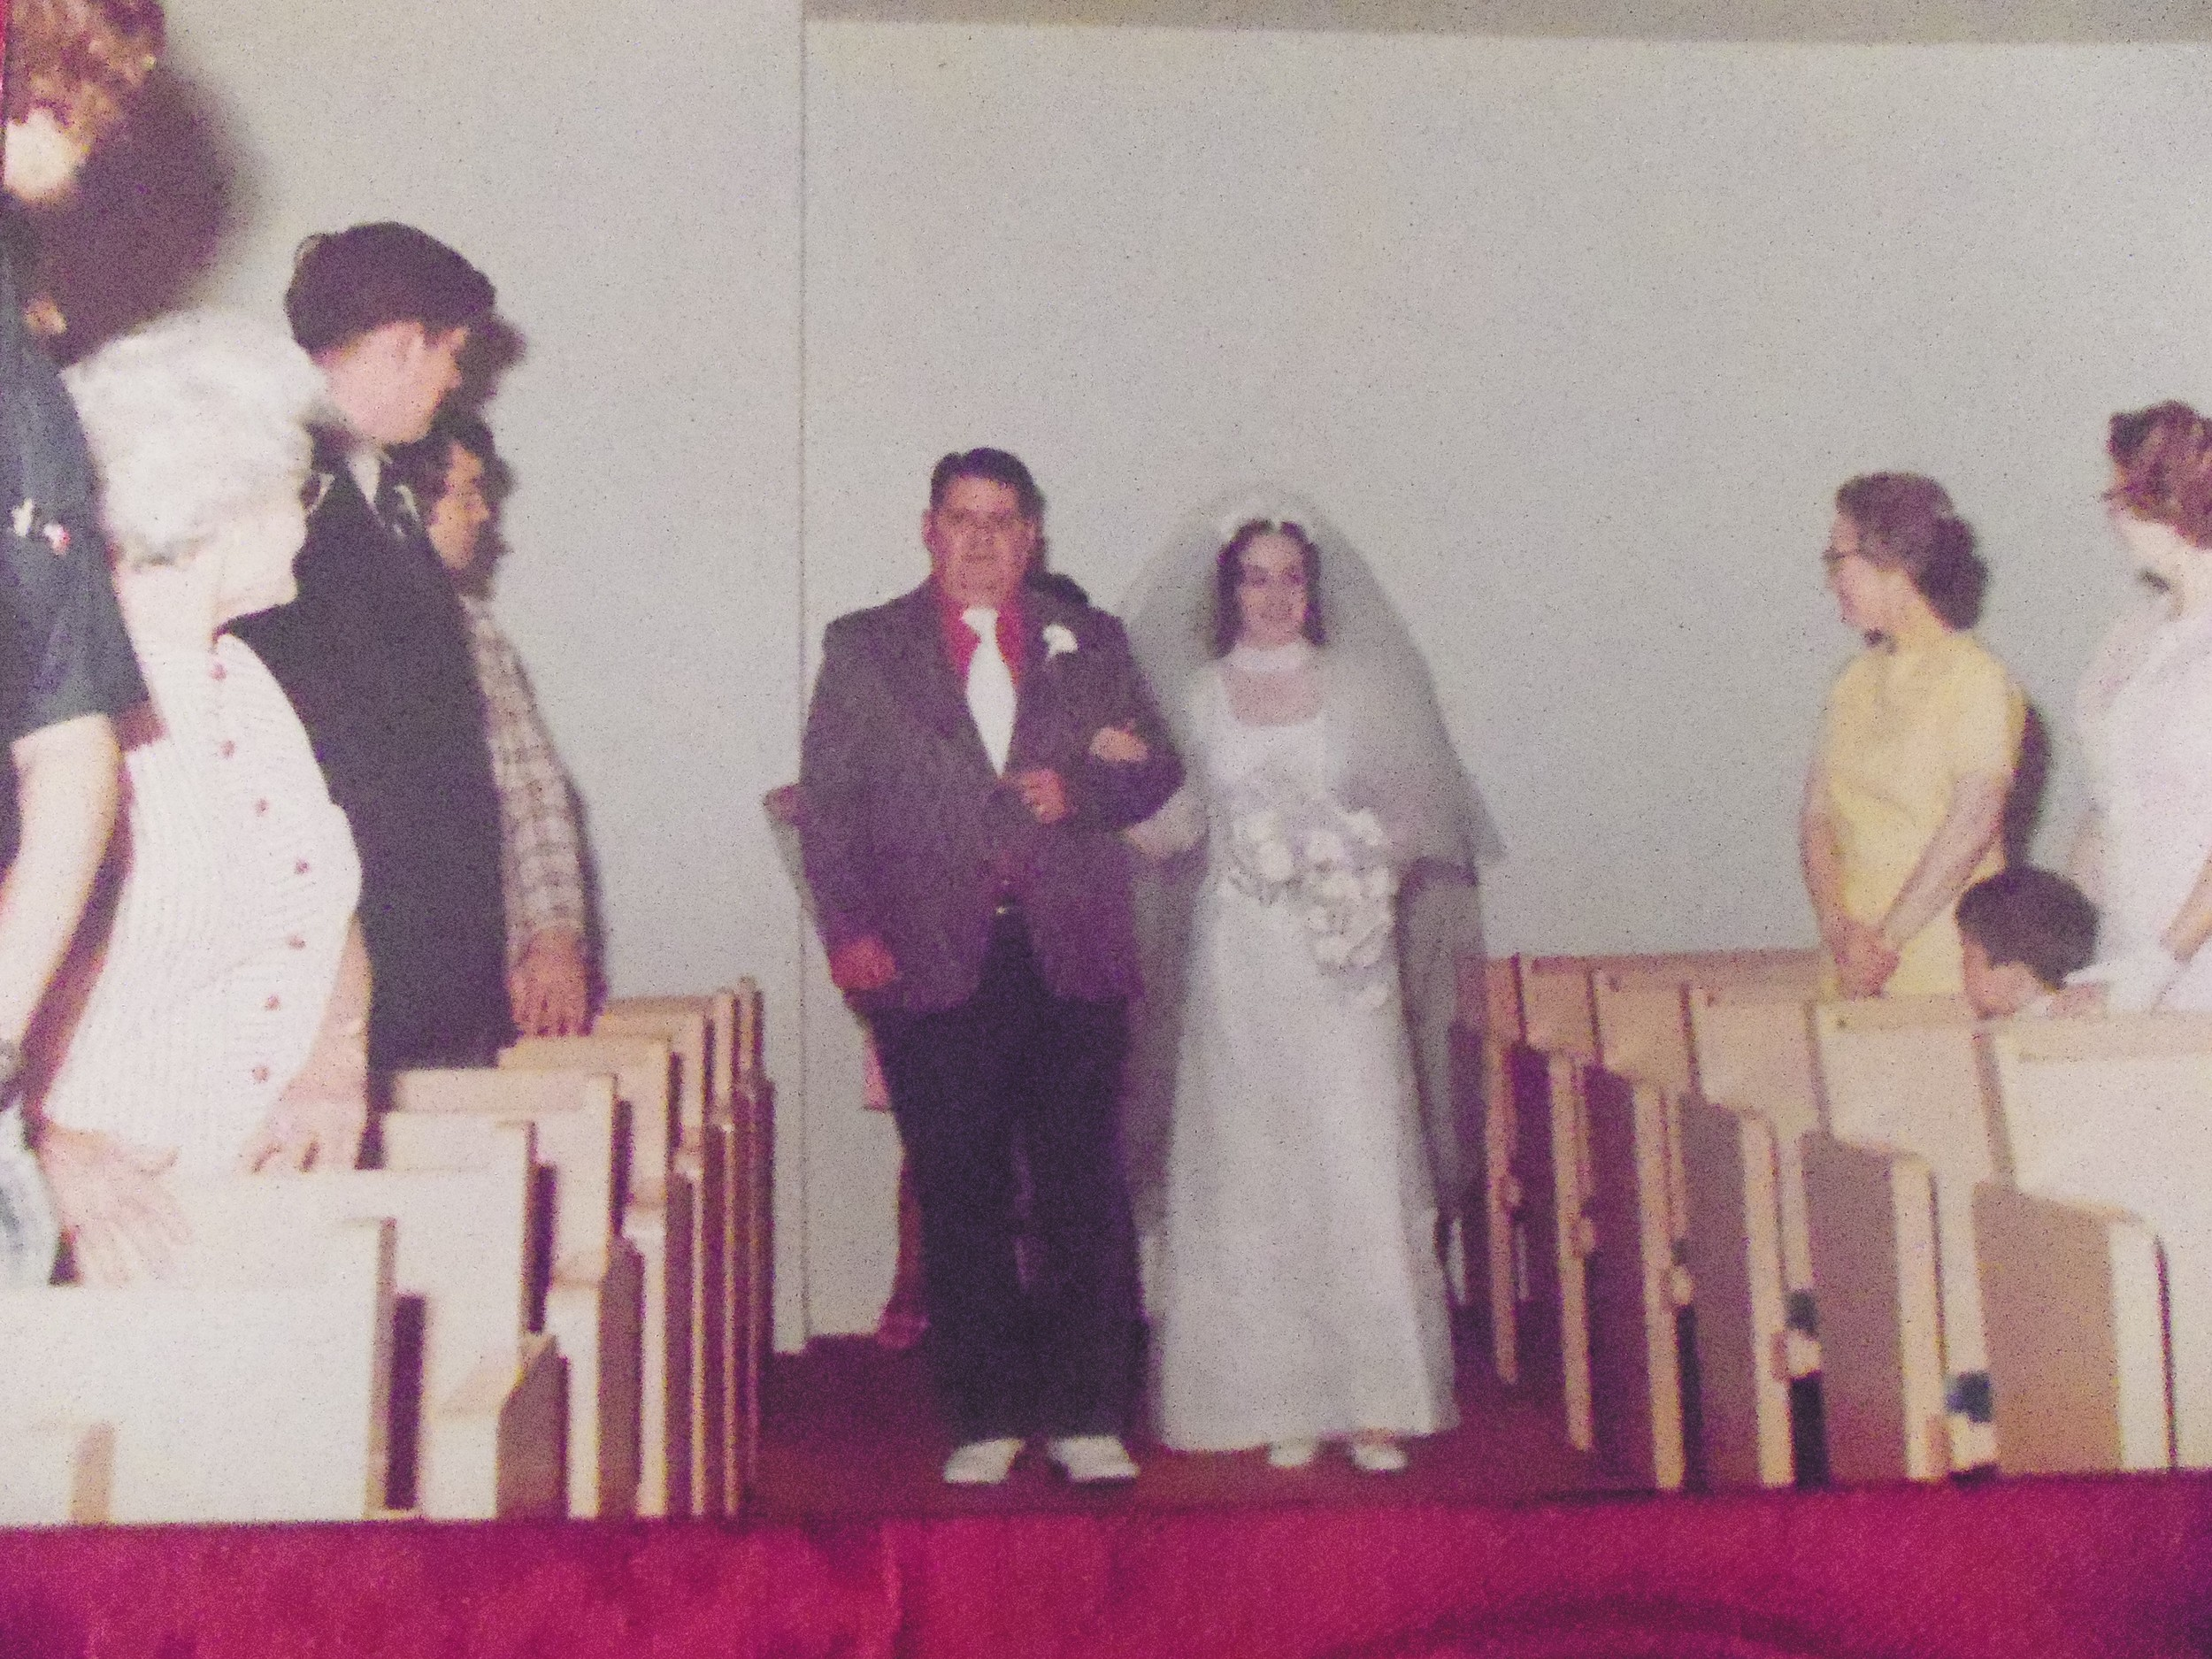 DAD HELPED ME DOWN THE ISLE  BREATHE KATHY BREATHE  THERE'S LITTLE DAVID